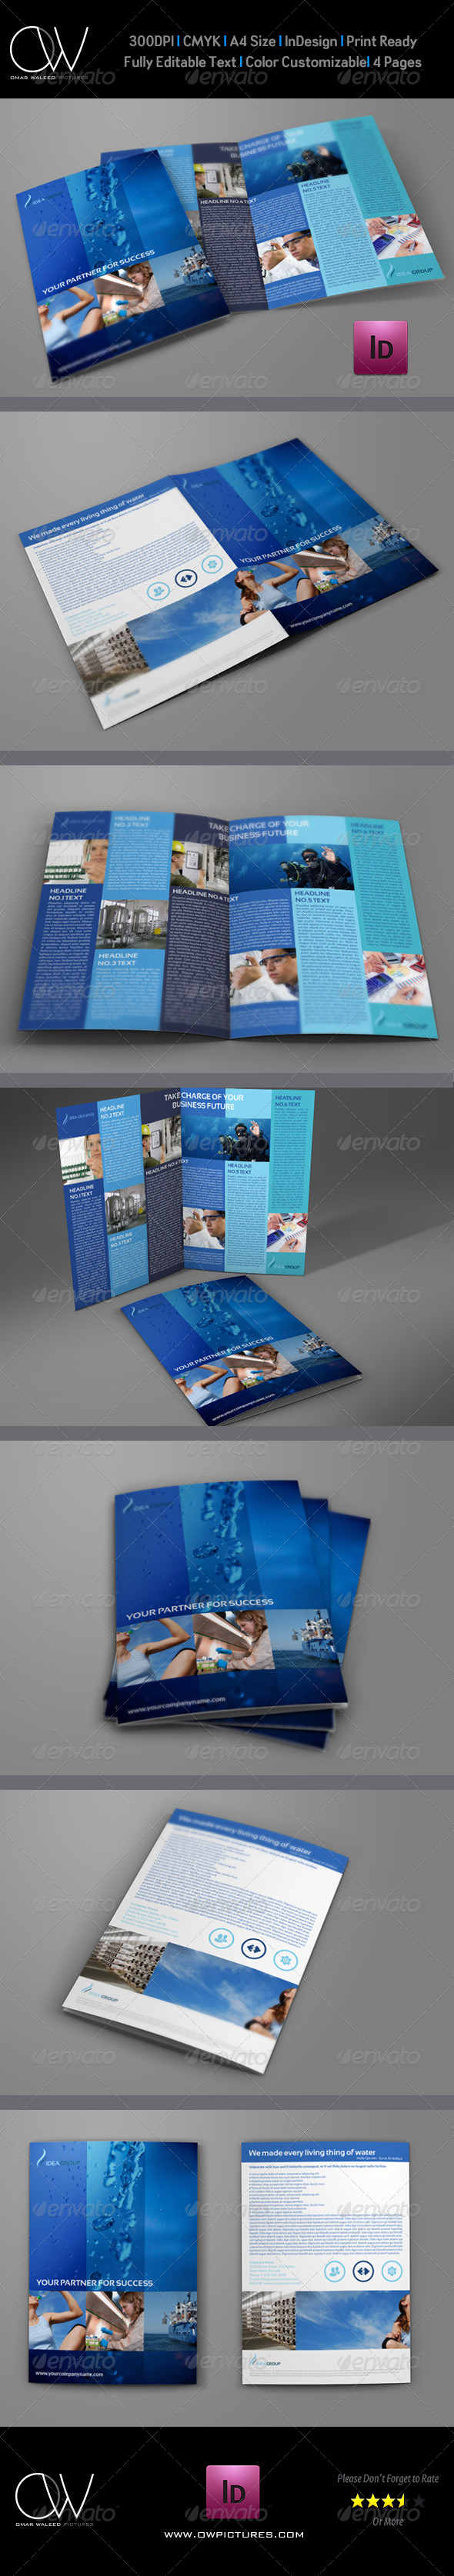 Company Brochure Bi-Fold Template Vol. 16 - Corporate Brochures